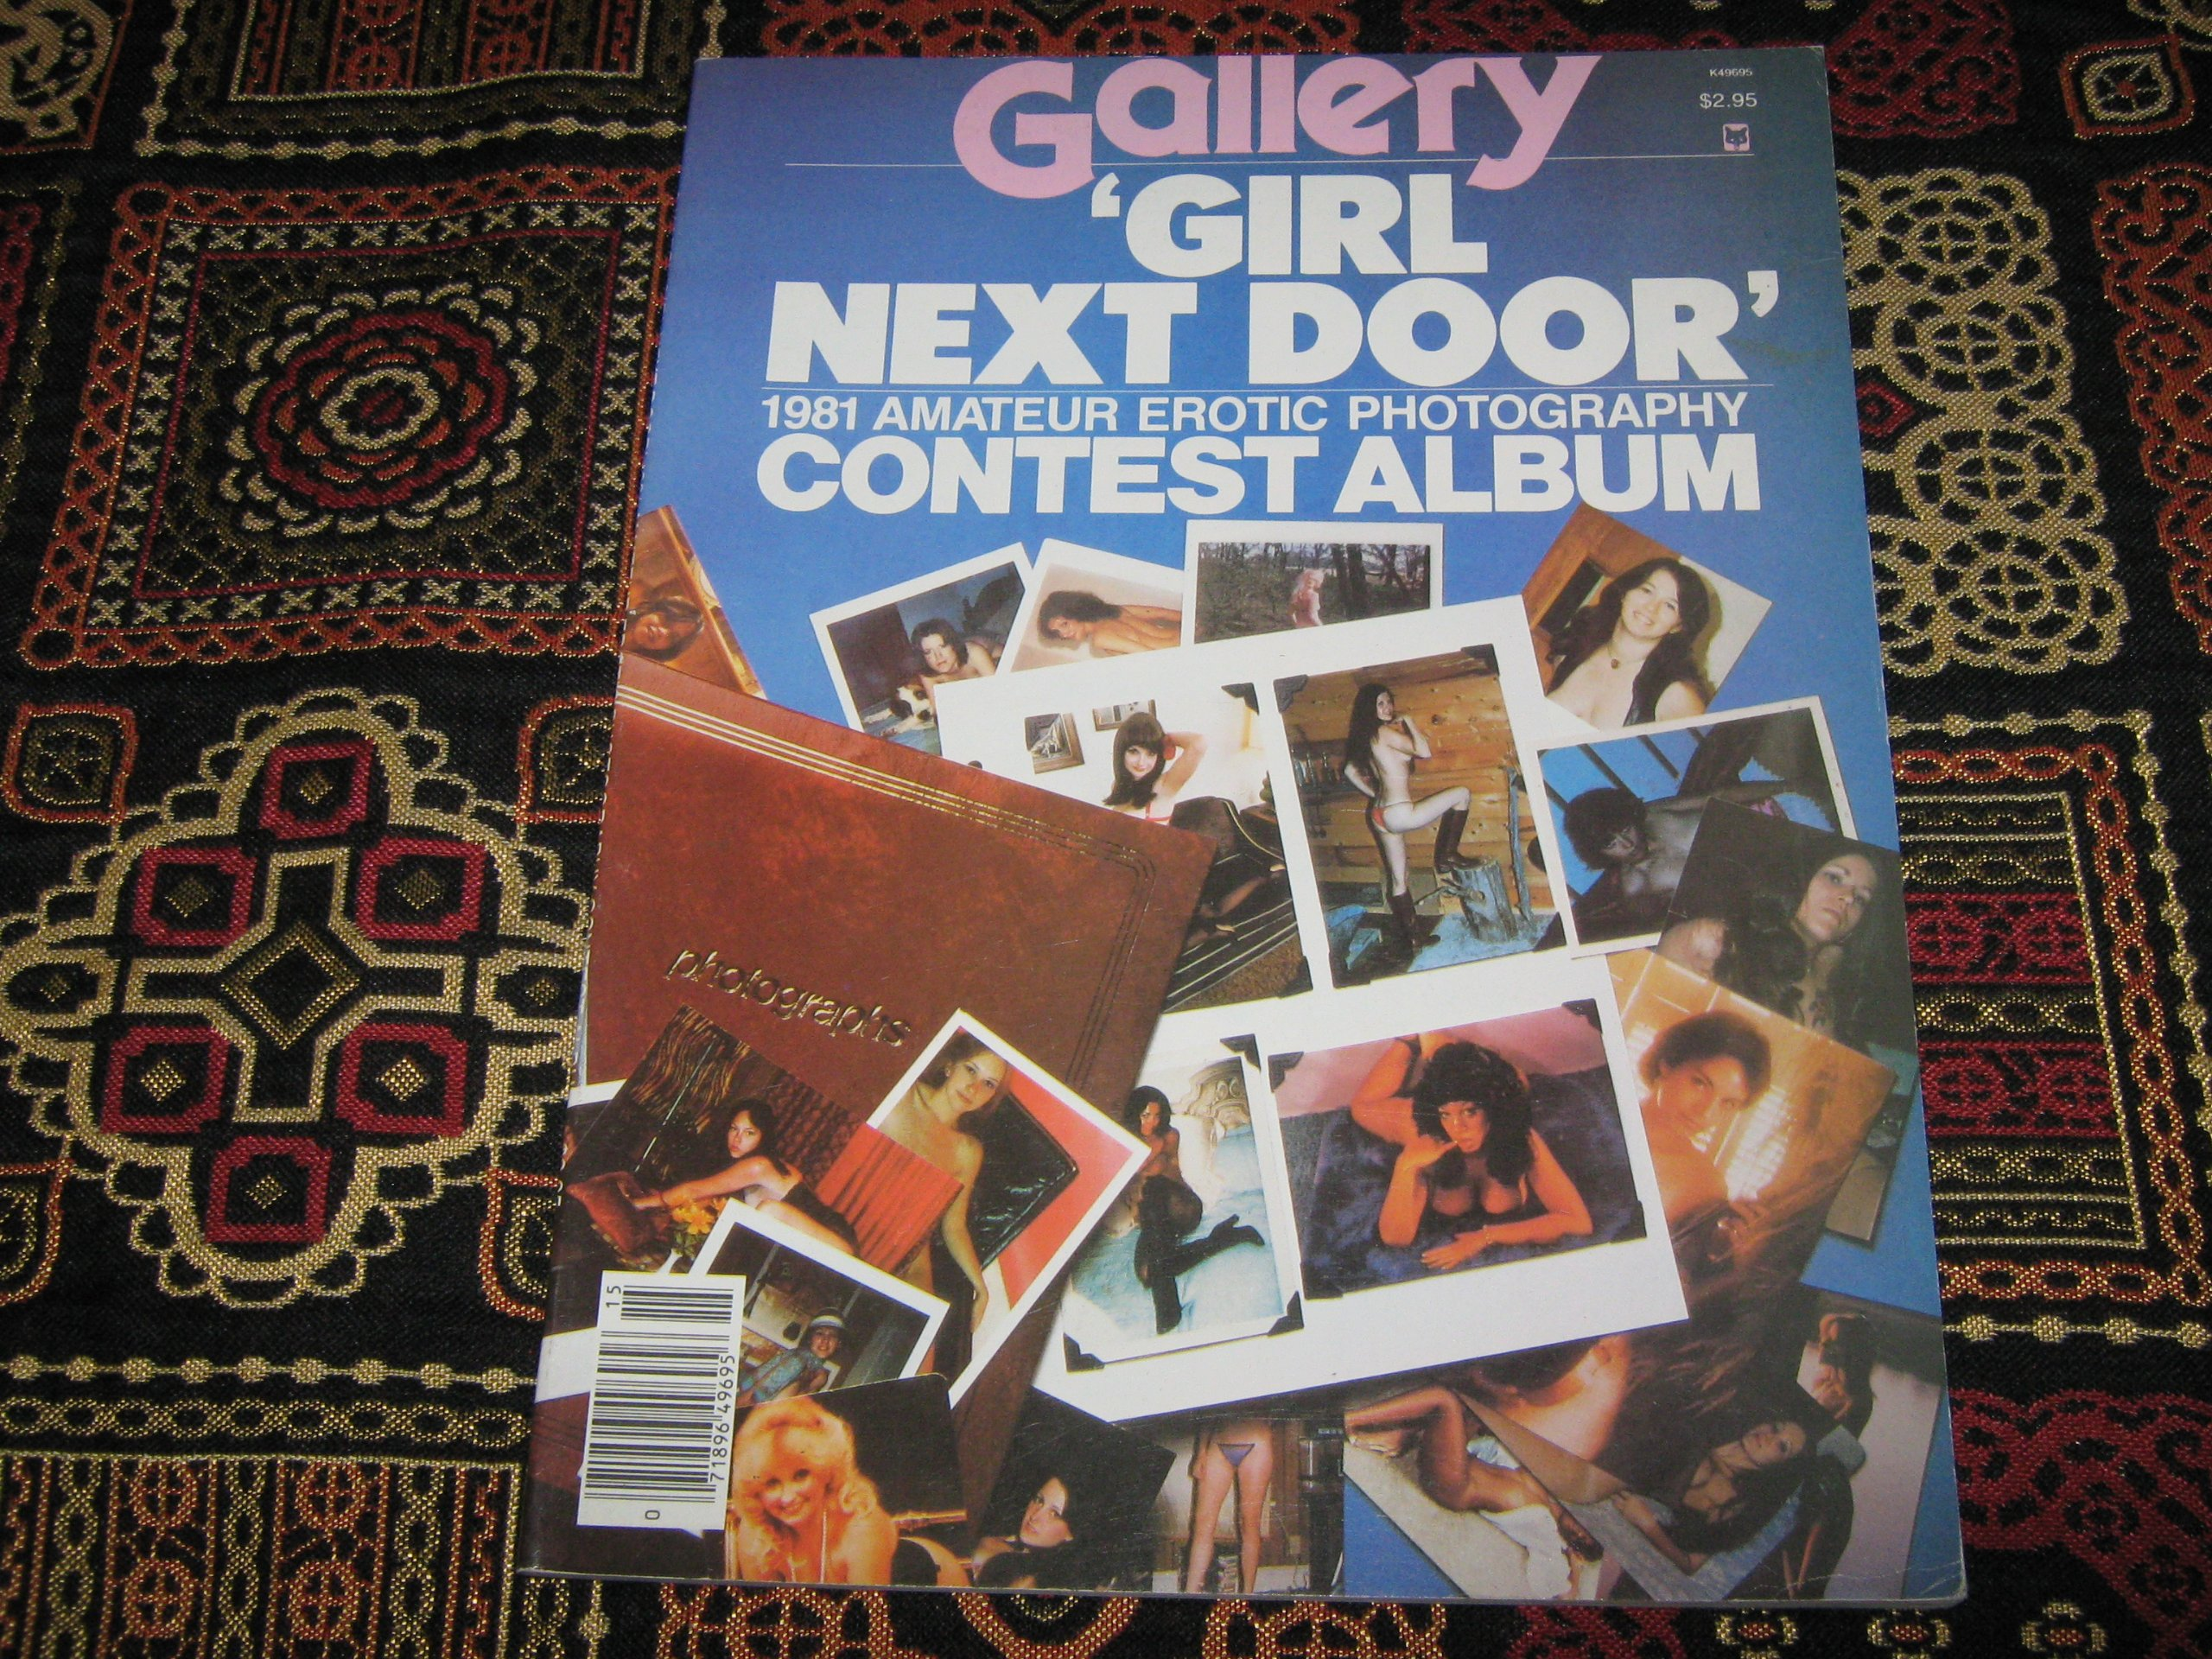 Gallery Girl Next Door Contest Album (1981 Amateur Erotic Photography, 1981)